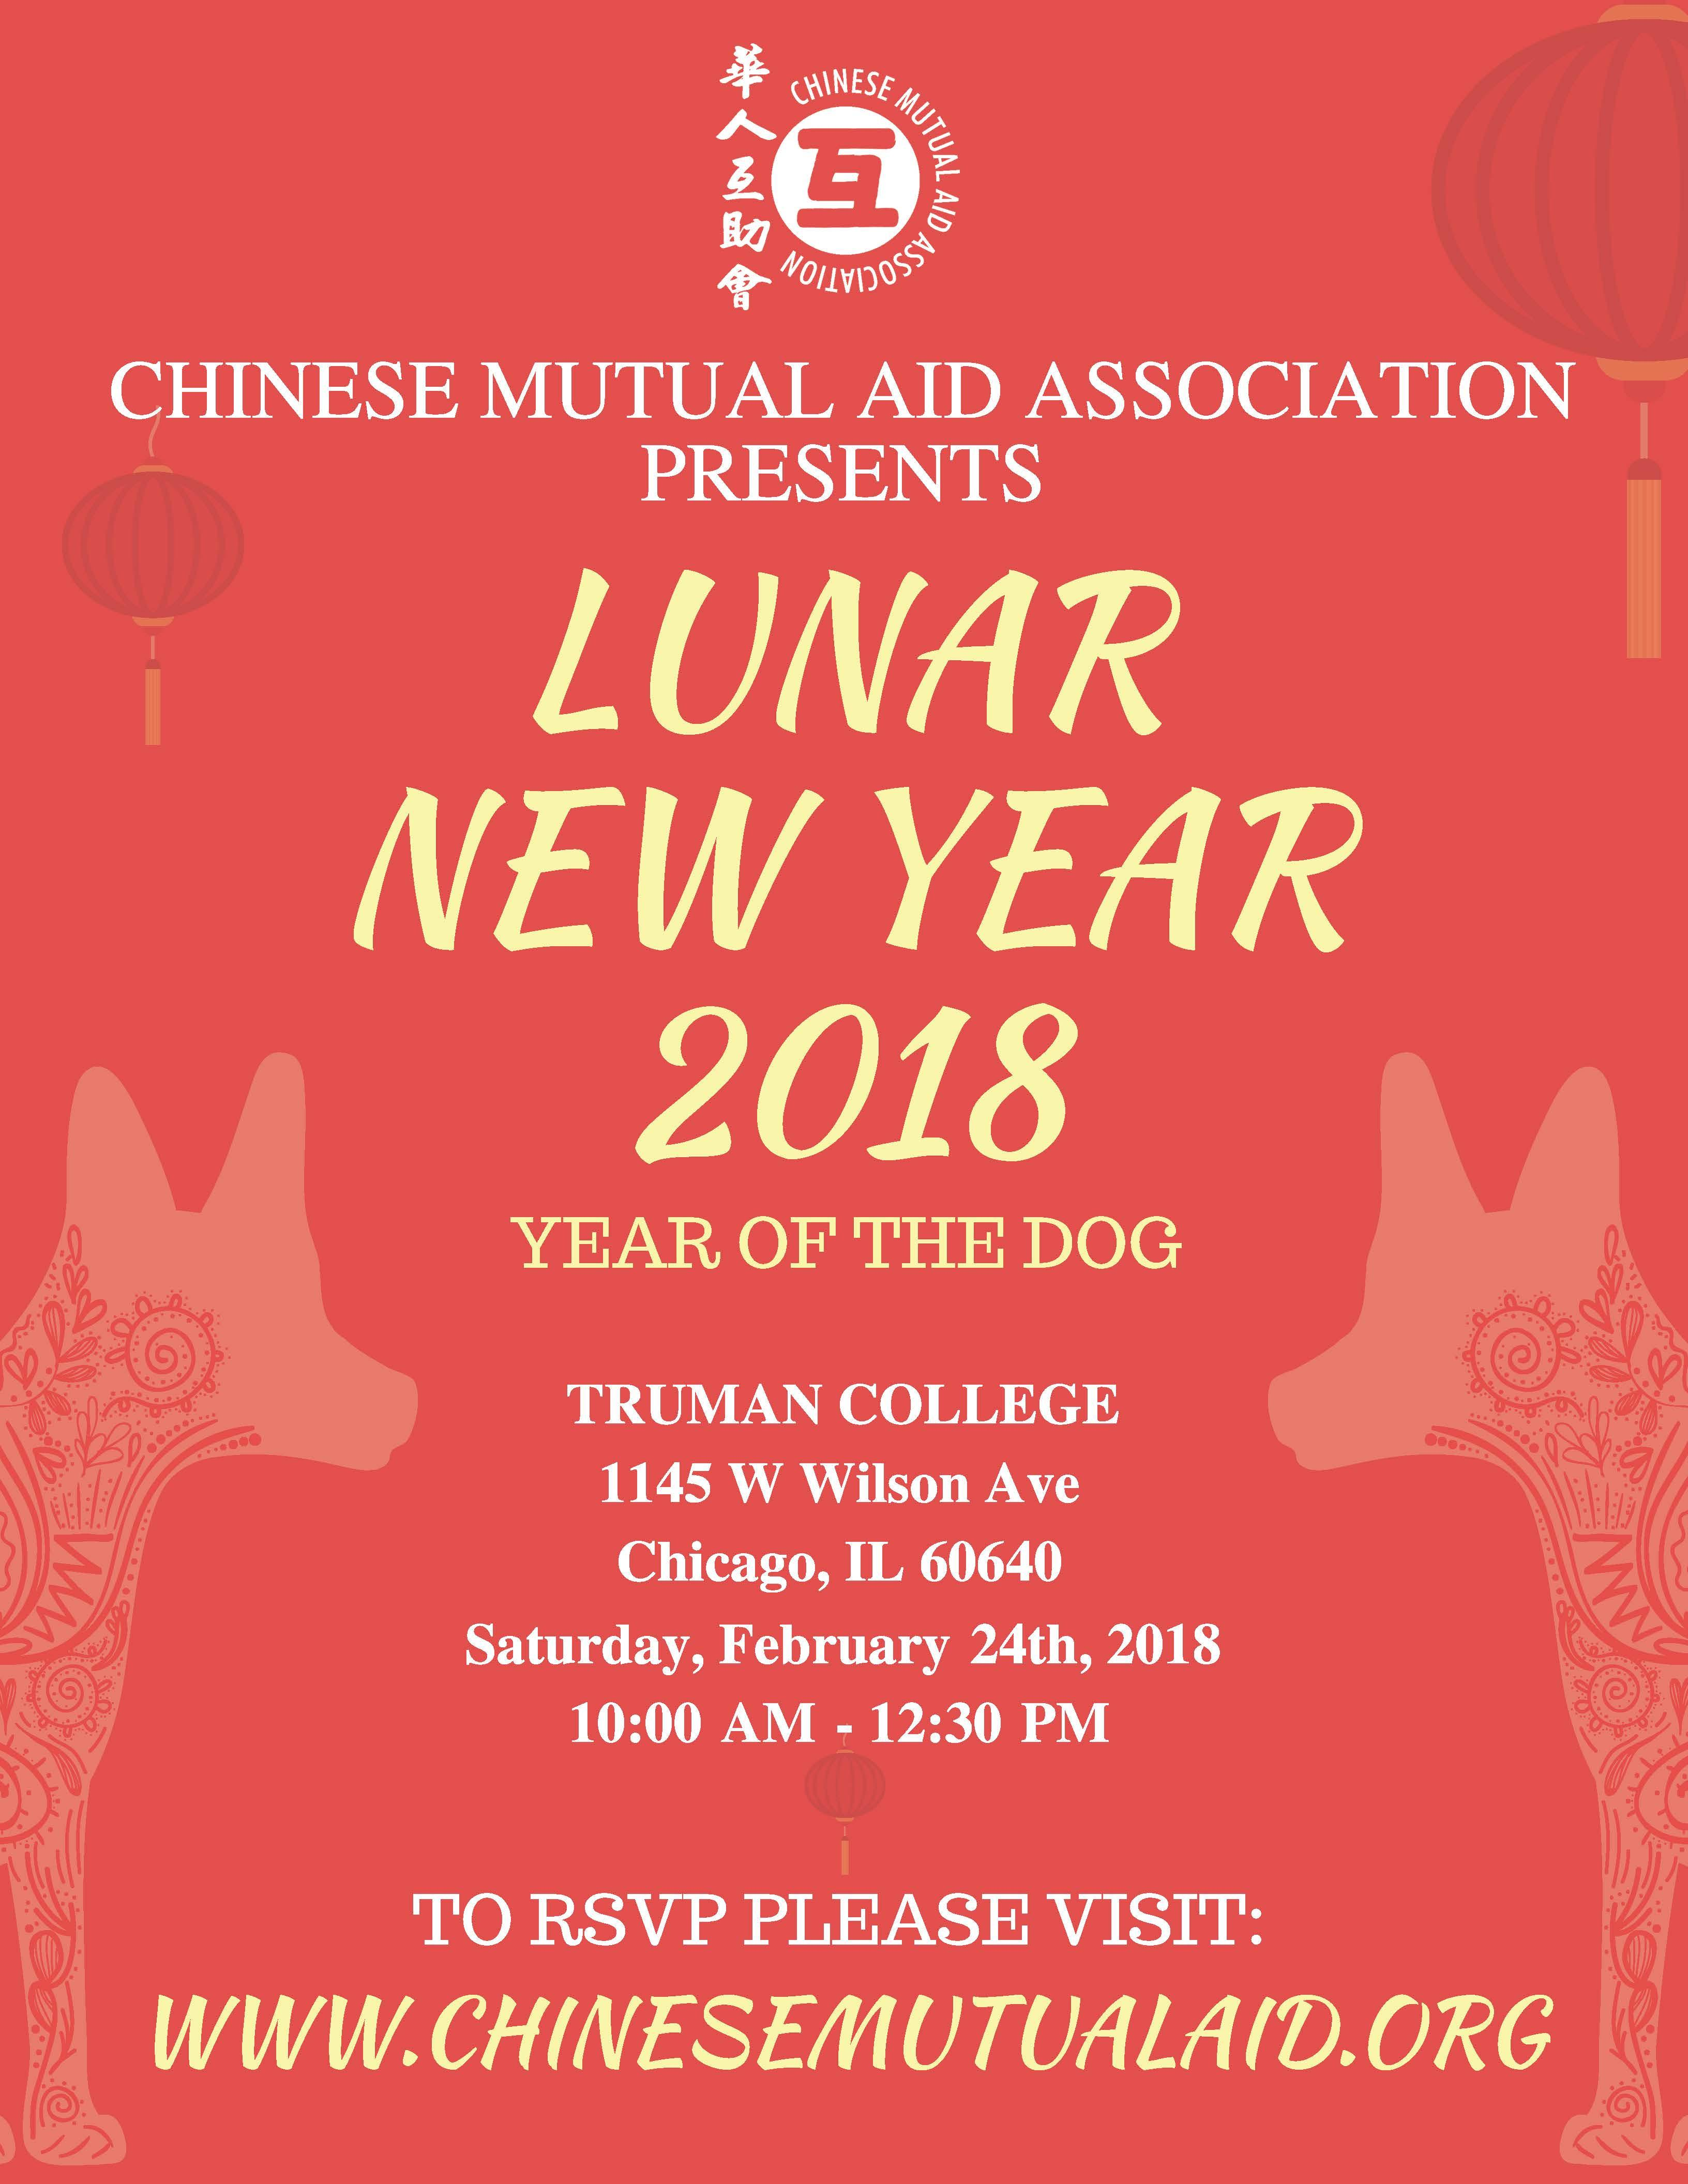 CMAA's Lunar New Year 2018